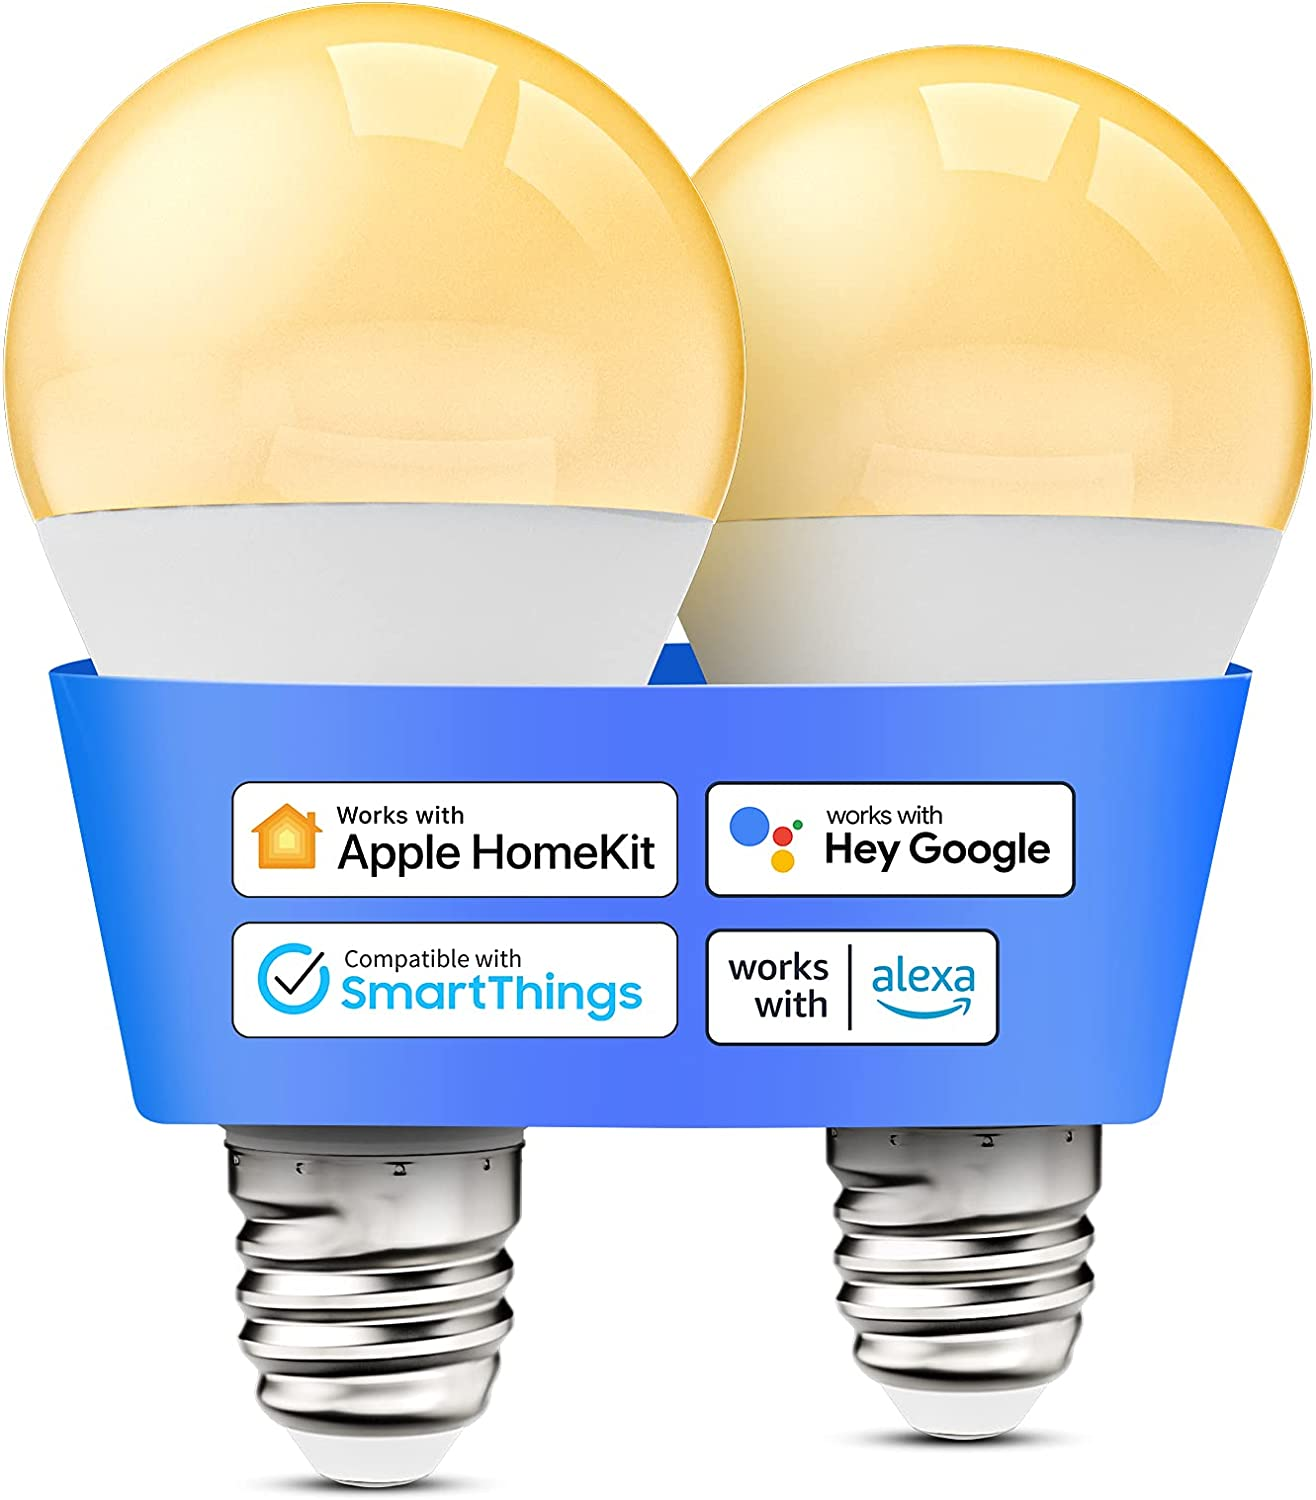 Smart Light Bulb, meross Dimmable WiFi LED Bulb Compatible with Apple HomeKit, Siri, Alexa, Google Home, SmartThings, A19 E26 Warm White 2700K, 810 Lumens 9W 60W Equivalent, No Hub Required, 2 Pack